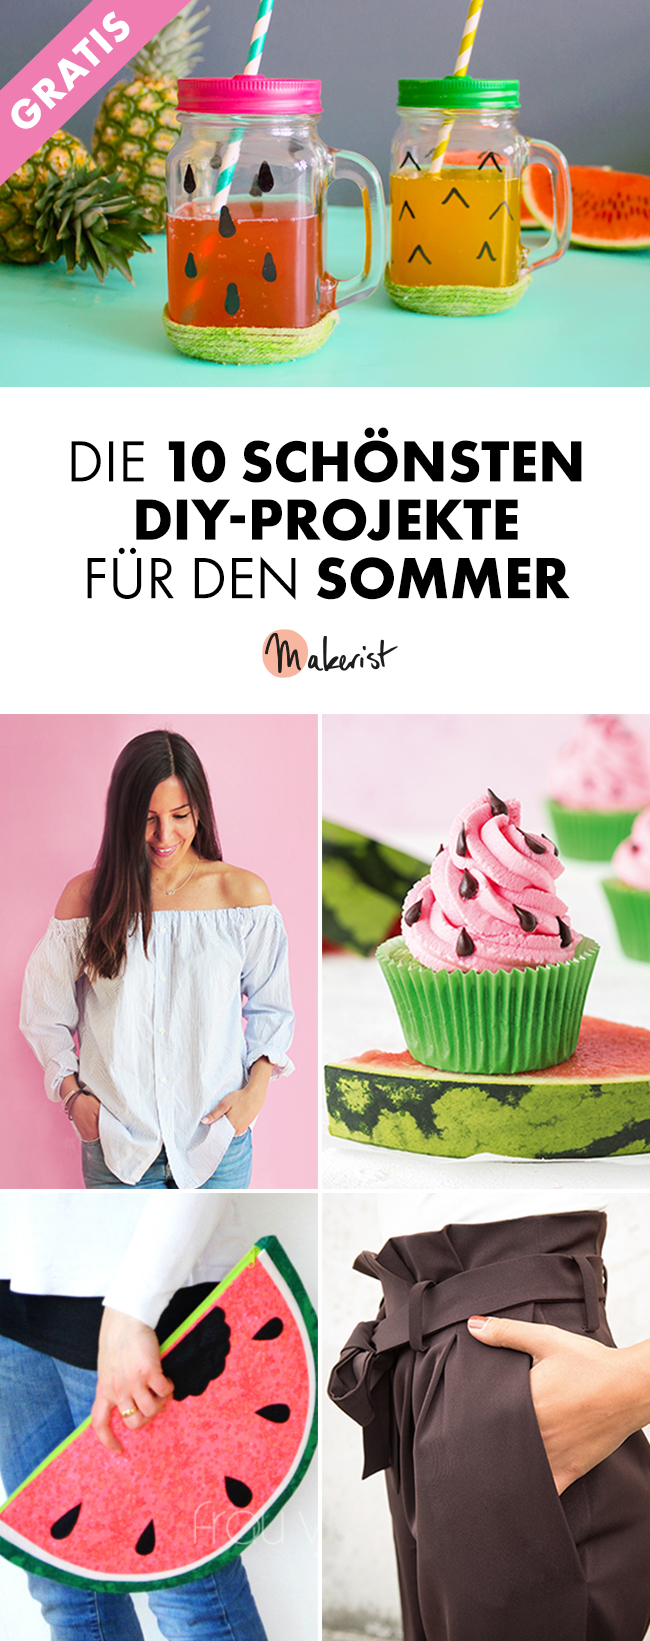 Makerist 10sommerprojekte pin